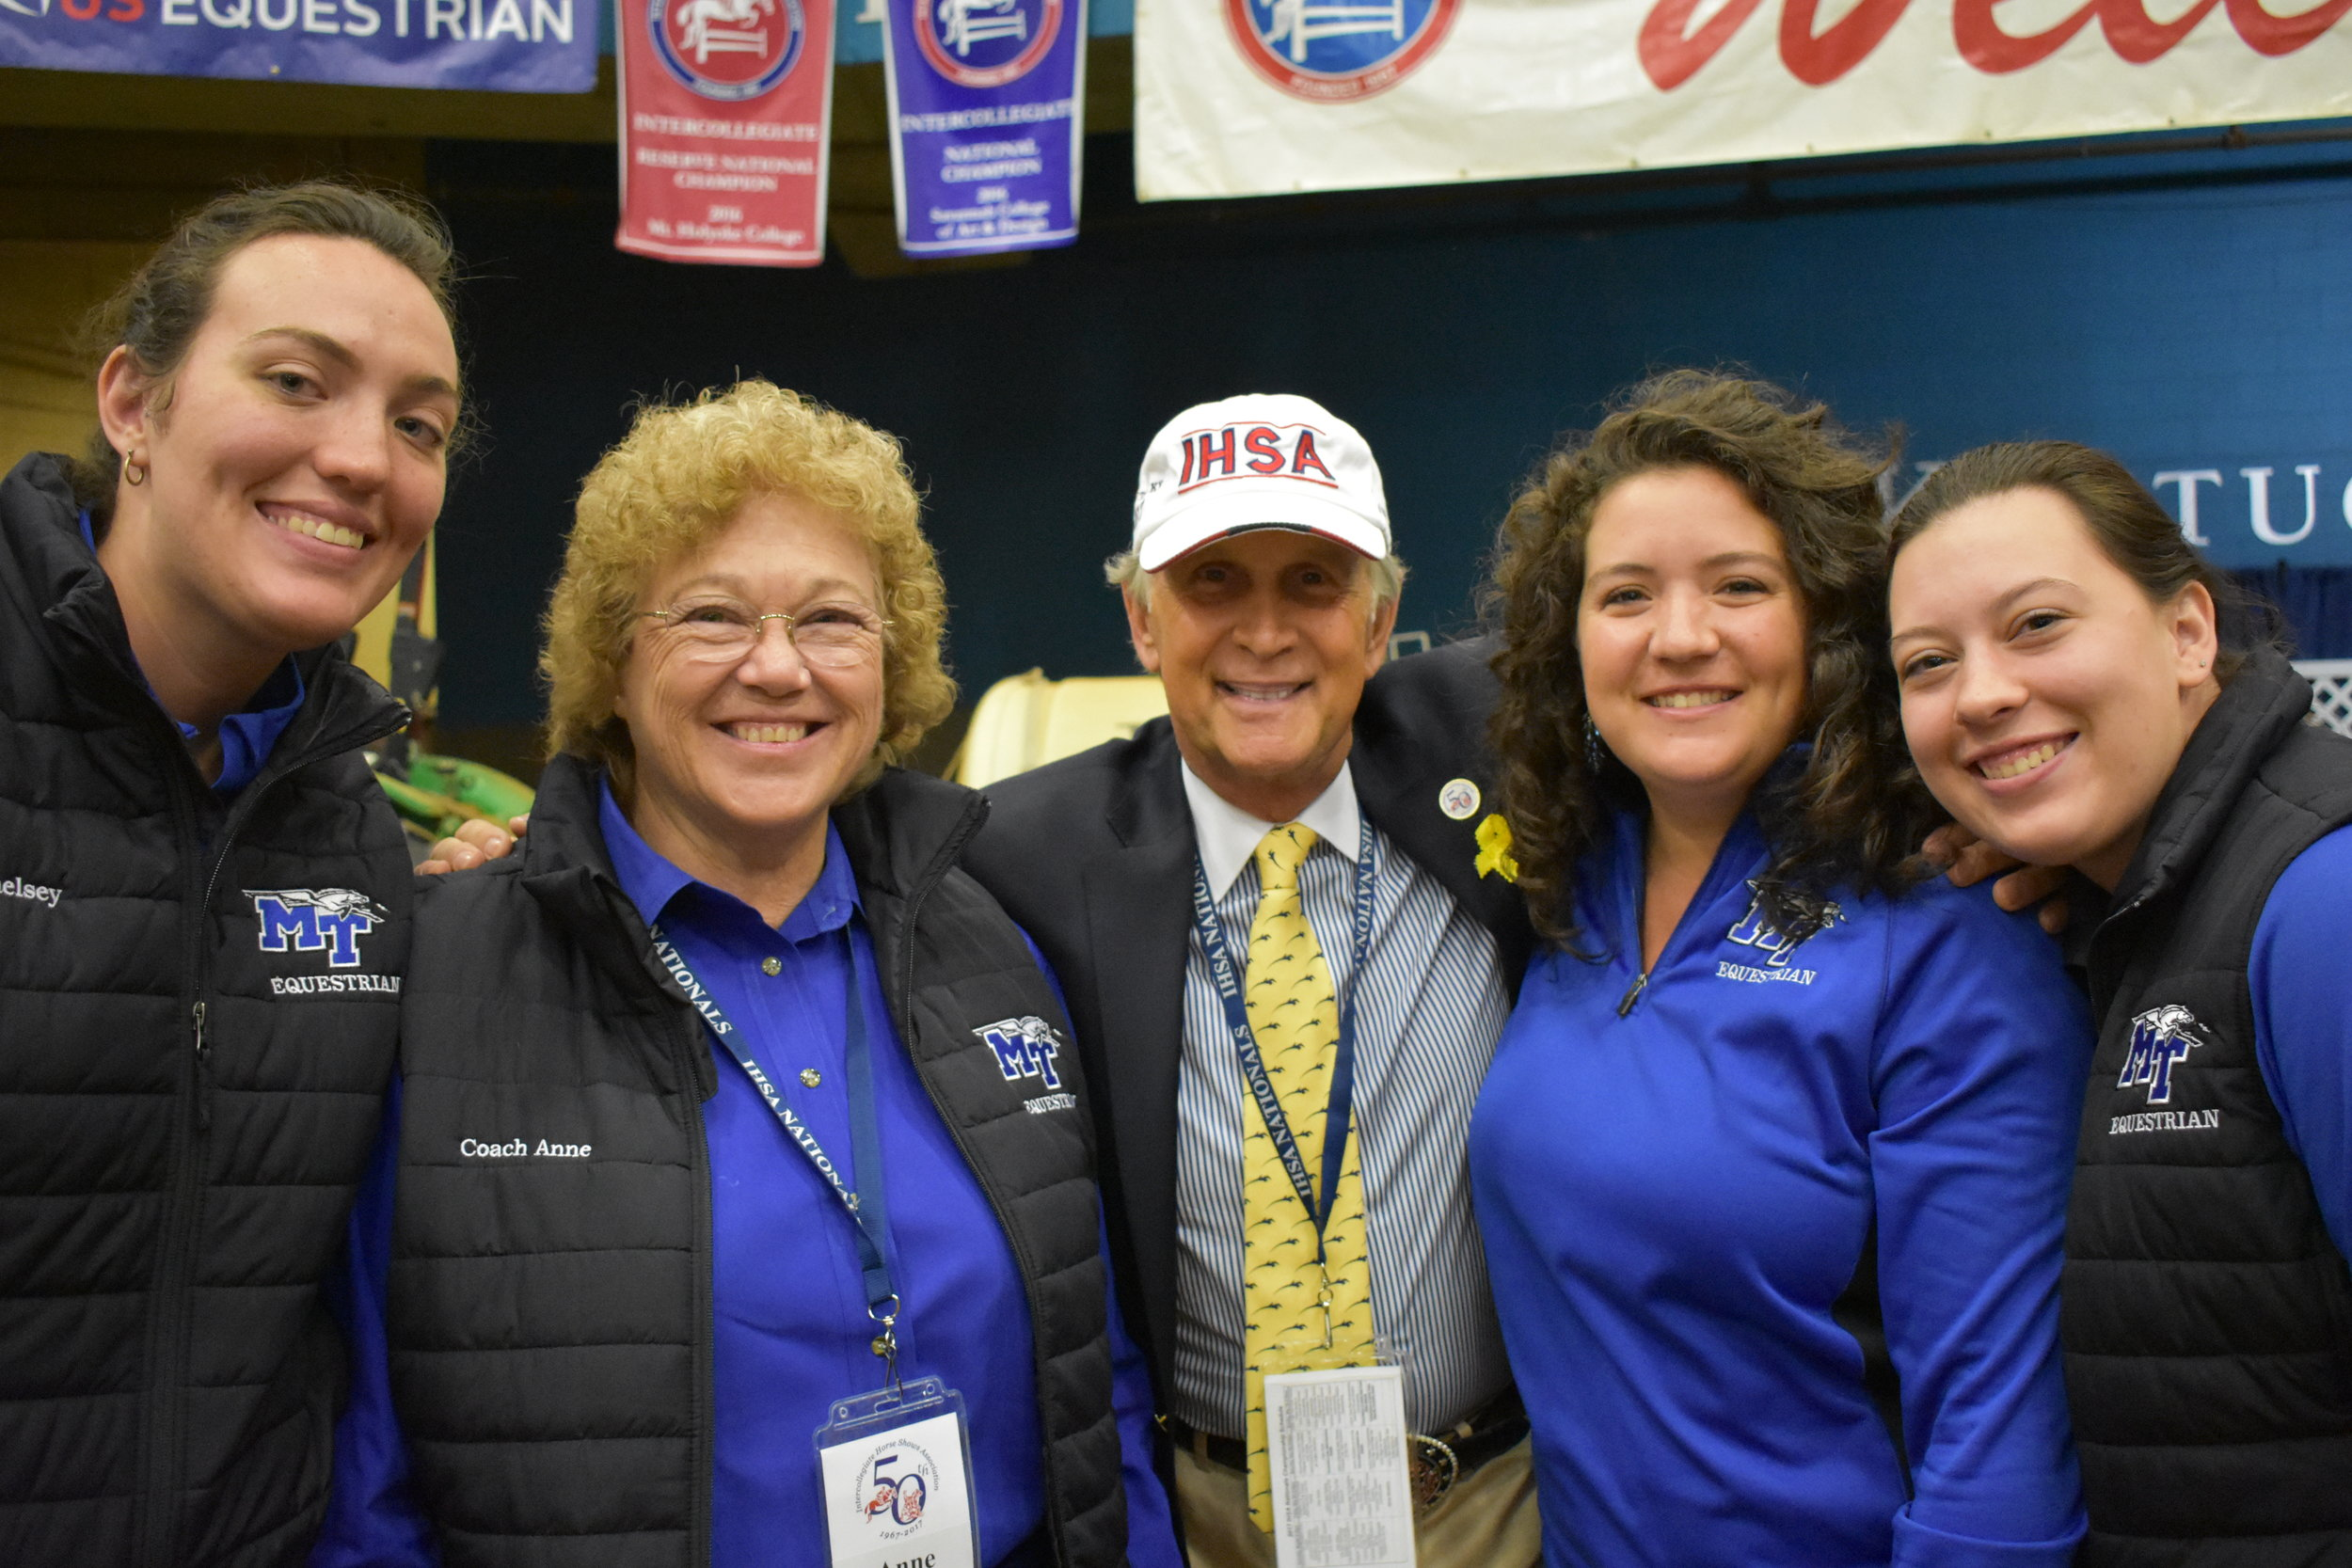 Anne Brzezicki and IHSA founder Bob Cacchione flanked by MTSU team members Chelsey Lynch, Emily Cavender and Ryelee Jordan. Photo by Kelly Rhinelander.